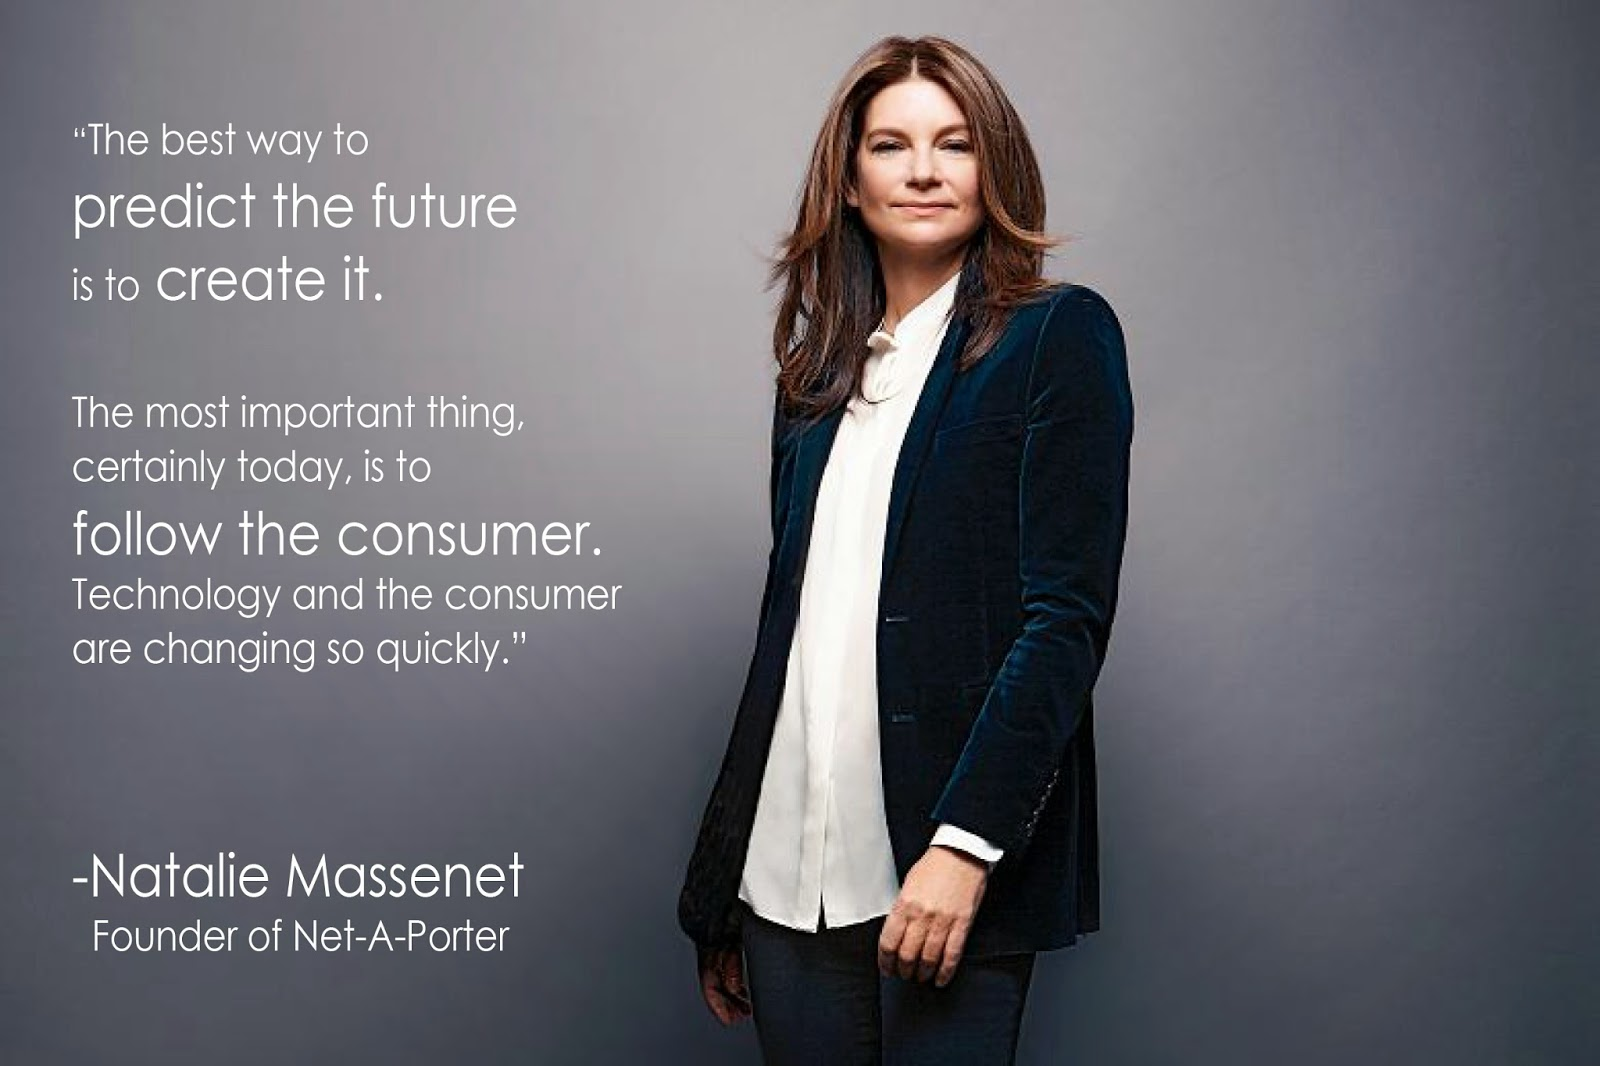 Natalie Massenet - Founder of Net-a-Porter - Women Empowerment Quotes - The best way to predict the future is to create it. The most important thing, certainly today, is to follow the consumer. Technology and the consumer are changing so quickly. Quotes by Natalie Massenet natalie massenet Women Empowerment: Net-a-Porter Founder Natalie Massenet 52b016acbe6fc1191f4b70f635651c06